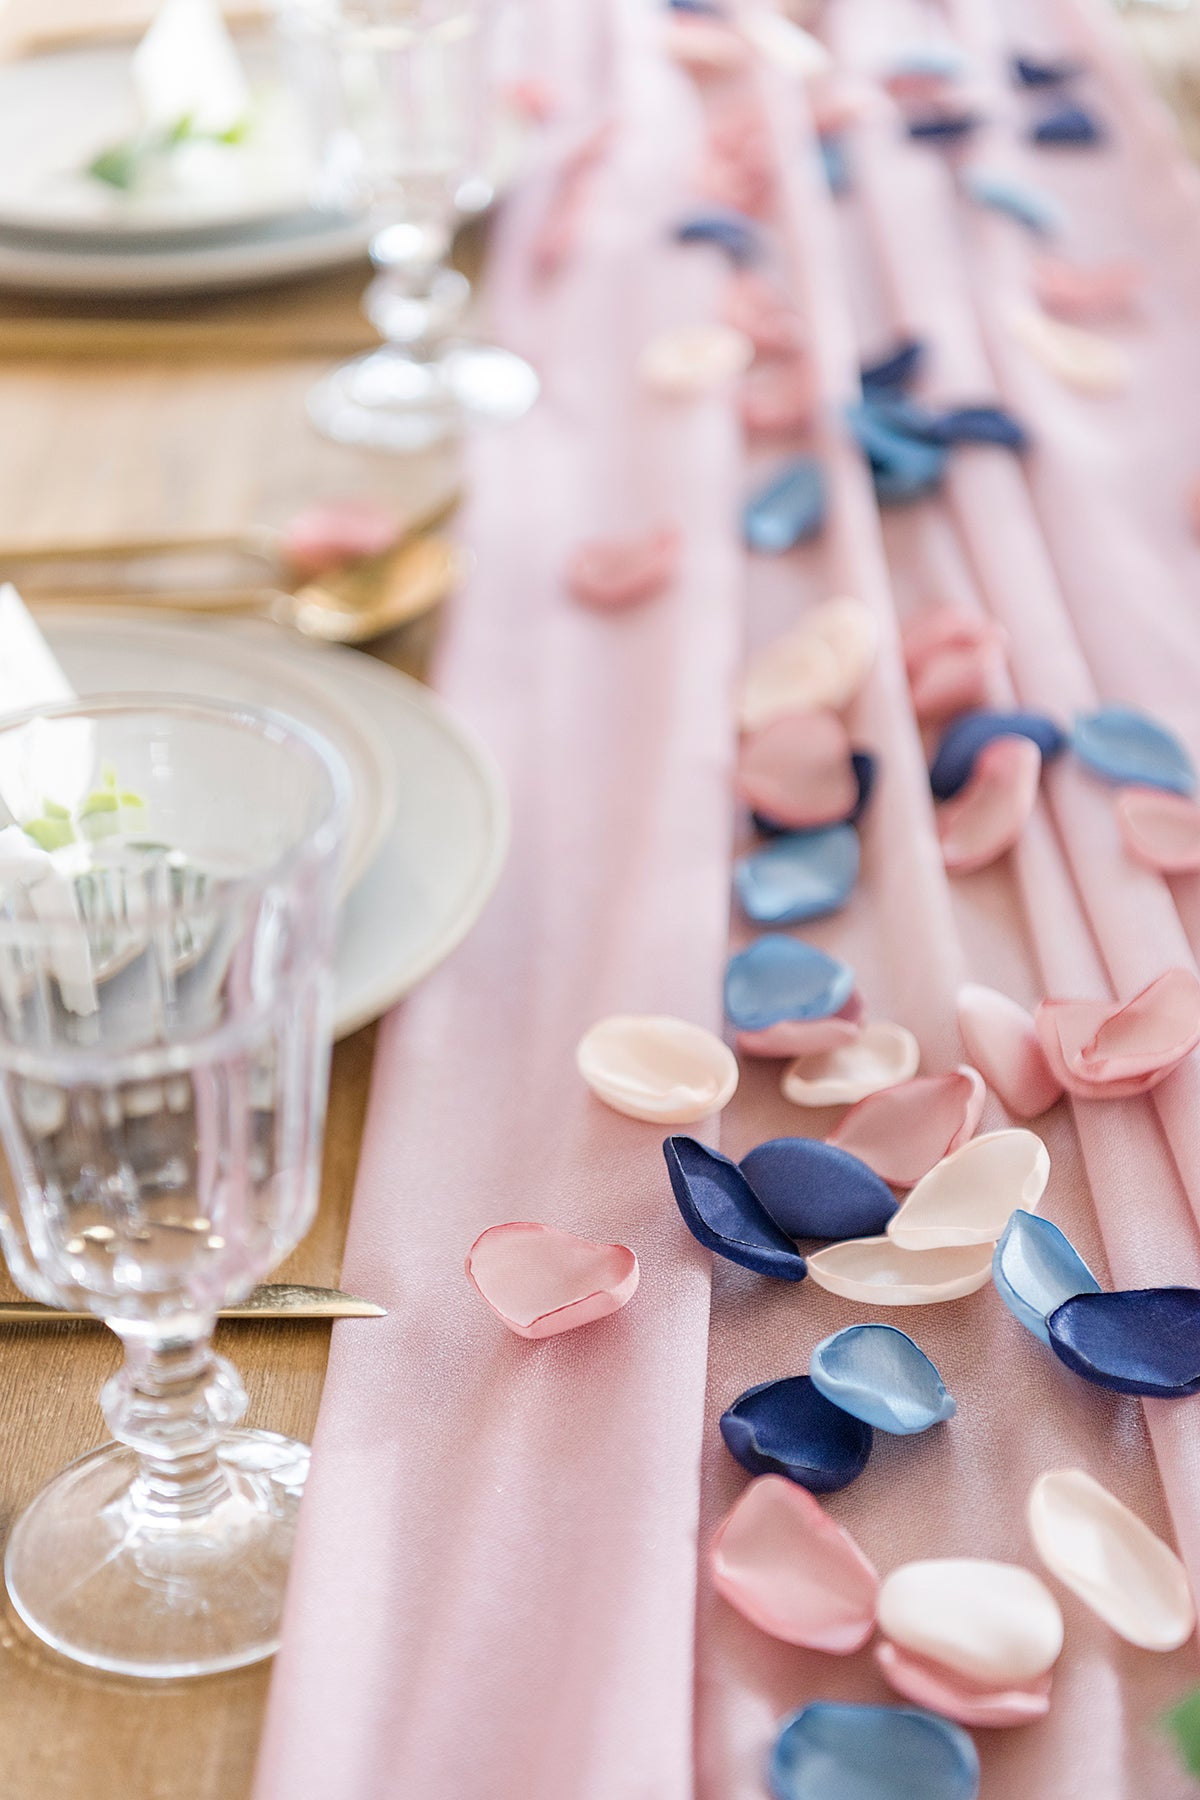 Silk Rose Petals 200pcs/400pcs - Blue Shades